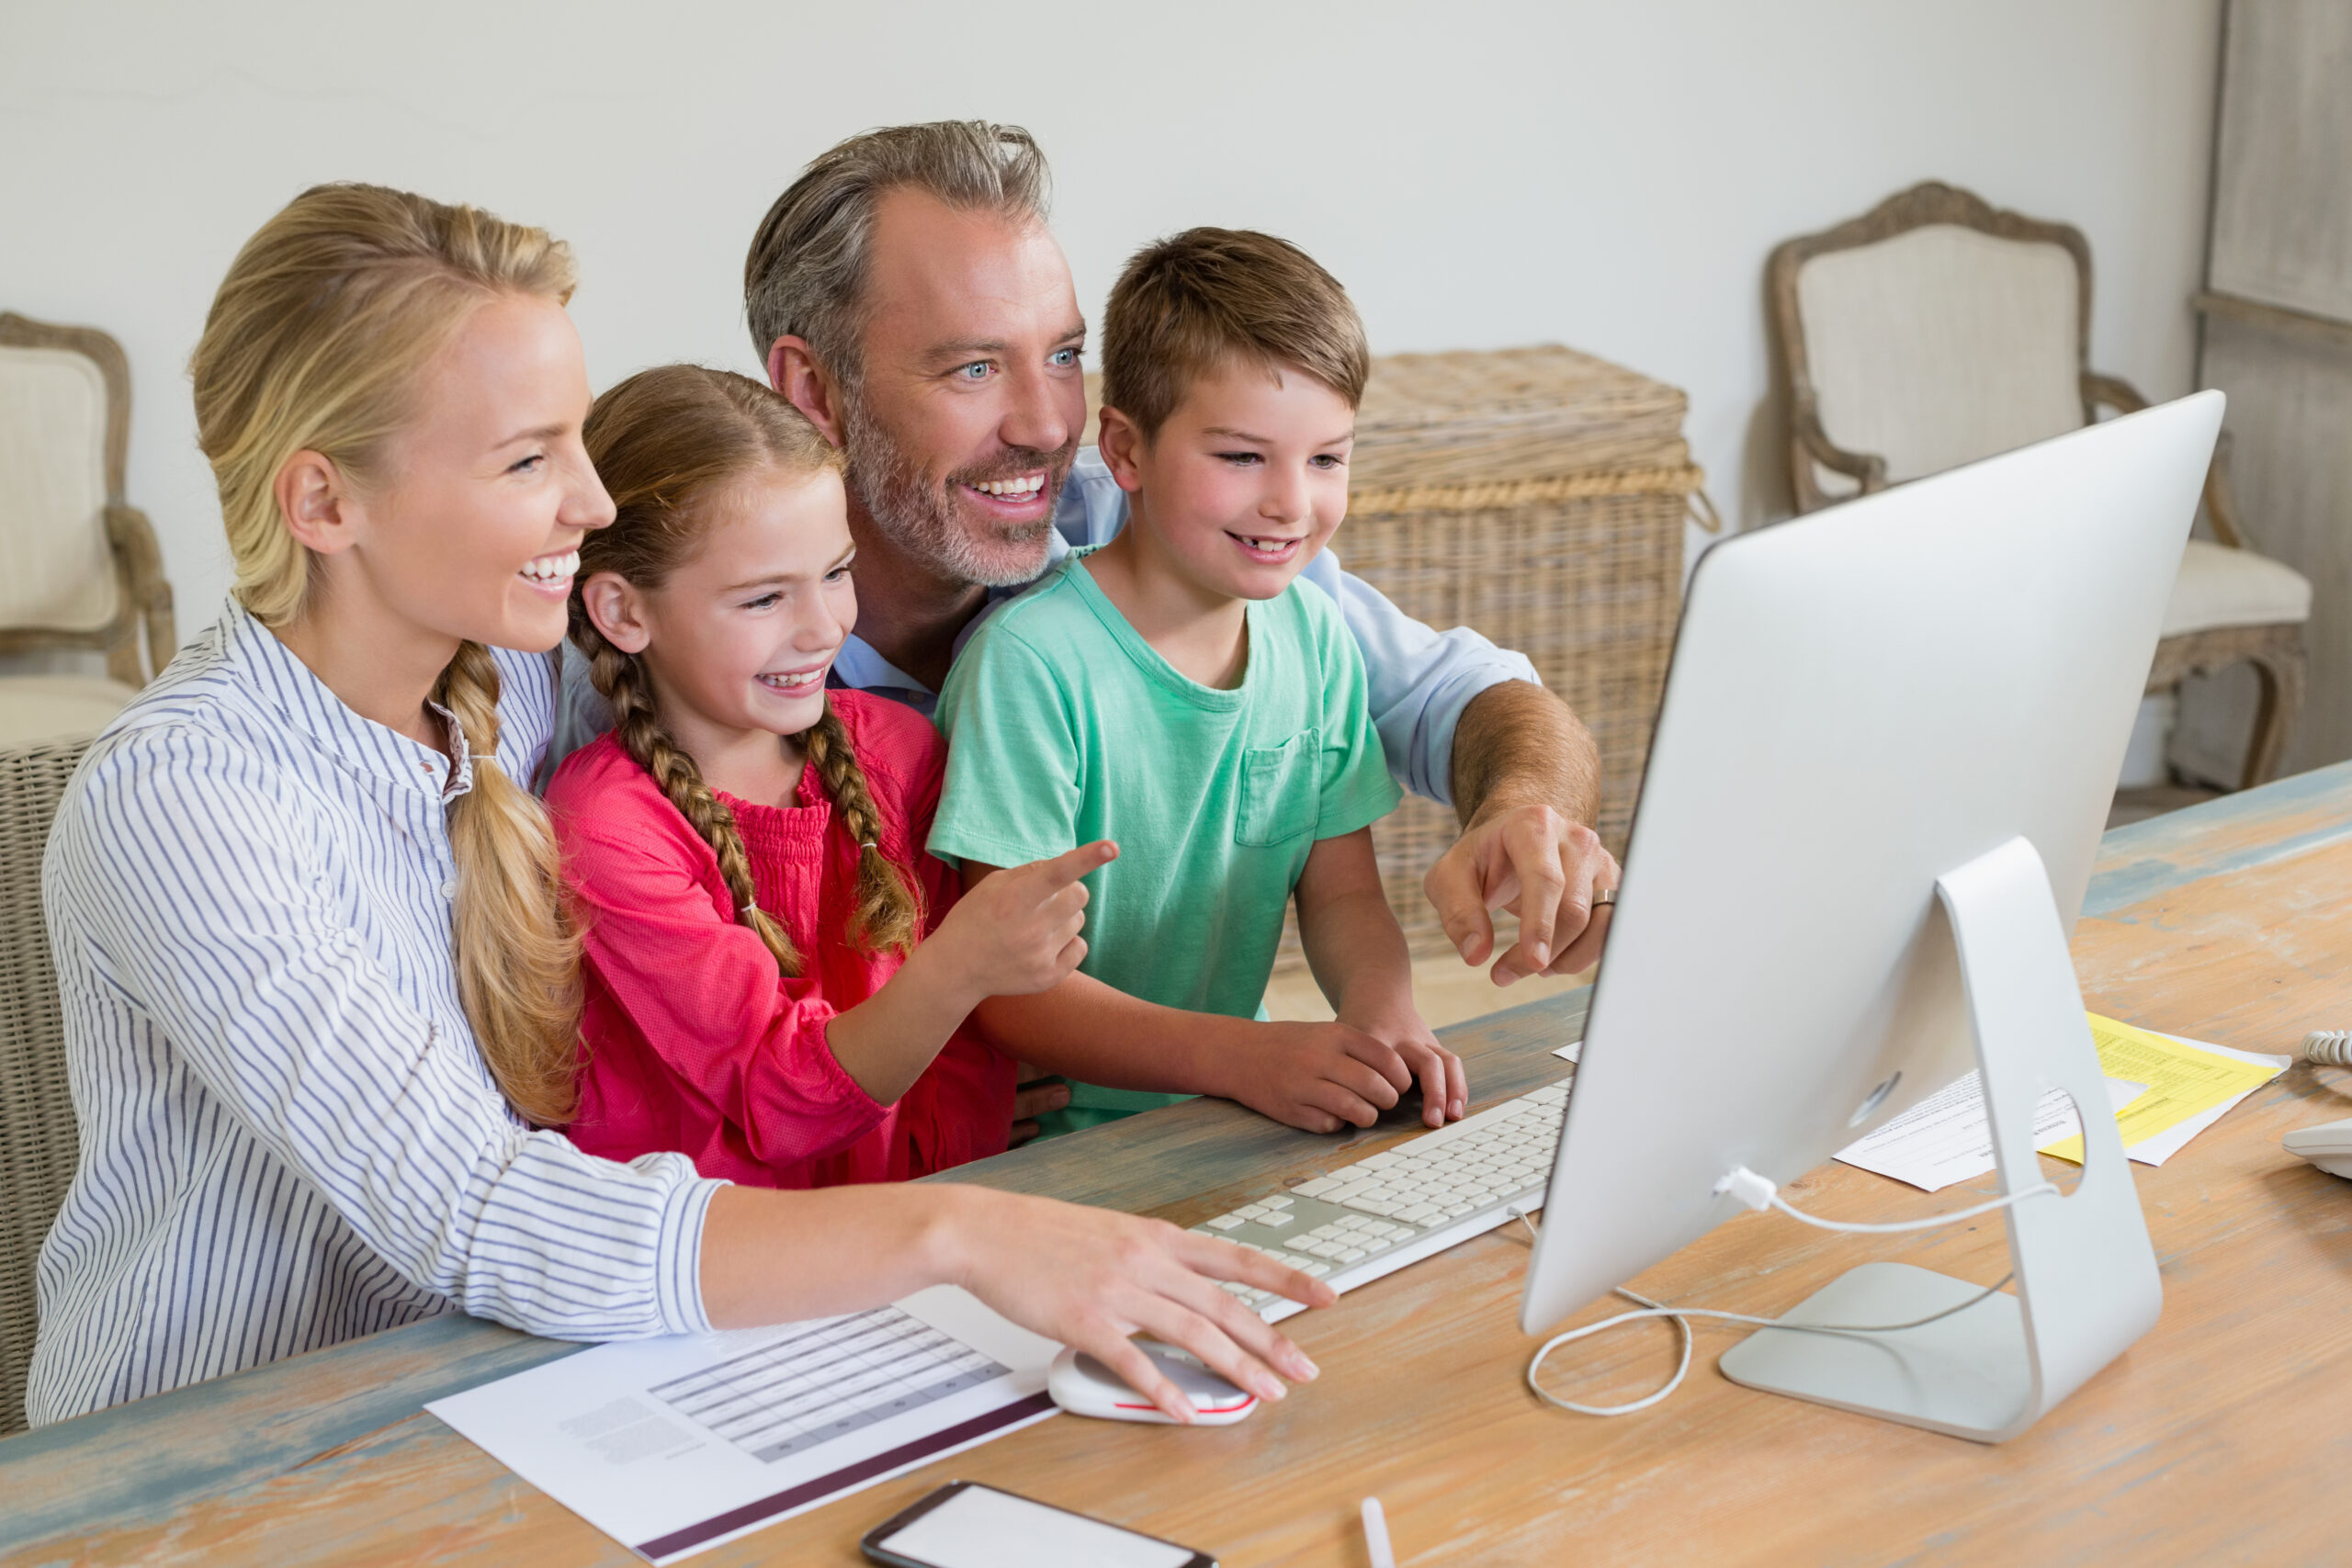 family using computer at home 9PDDMNW scaled RESIDENTIAL